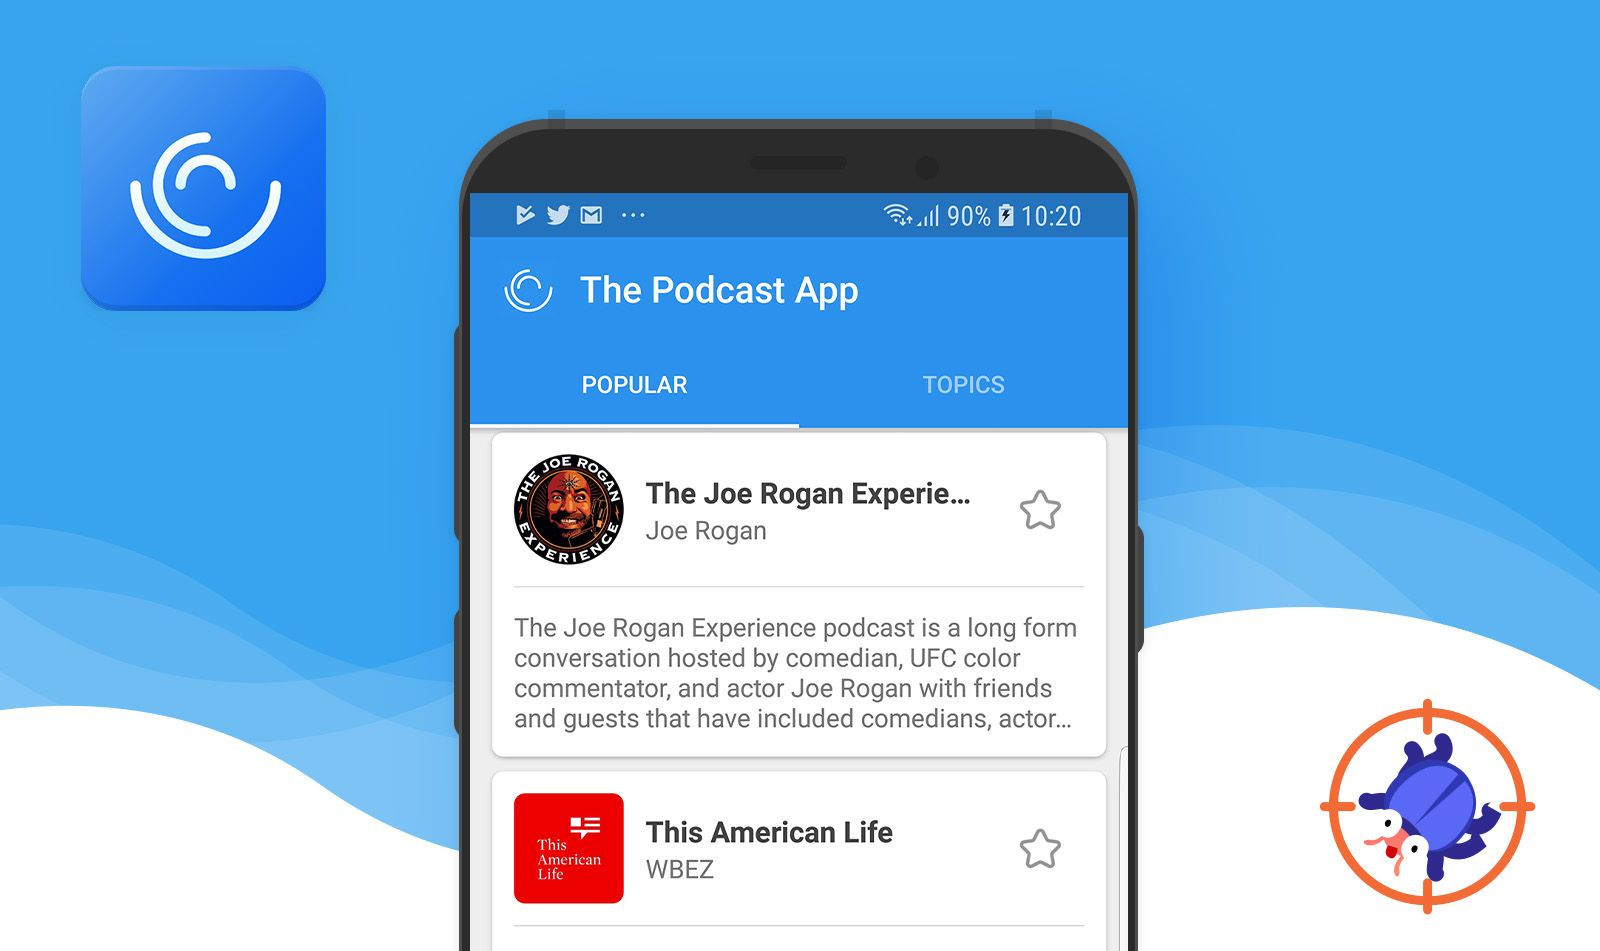 The Podcast App is a free app for Android where it is